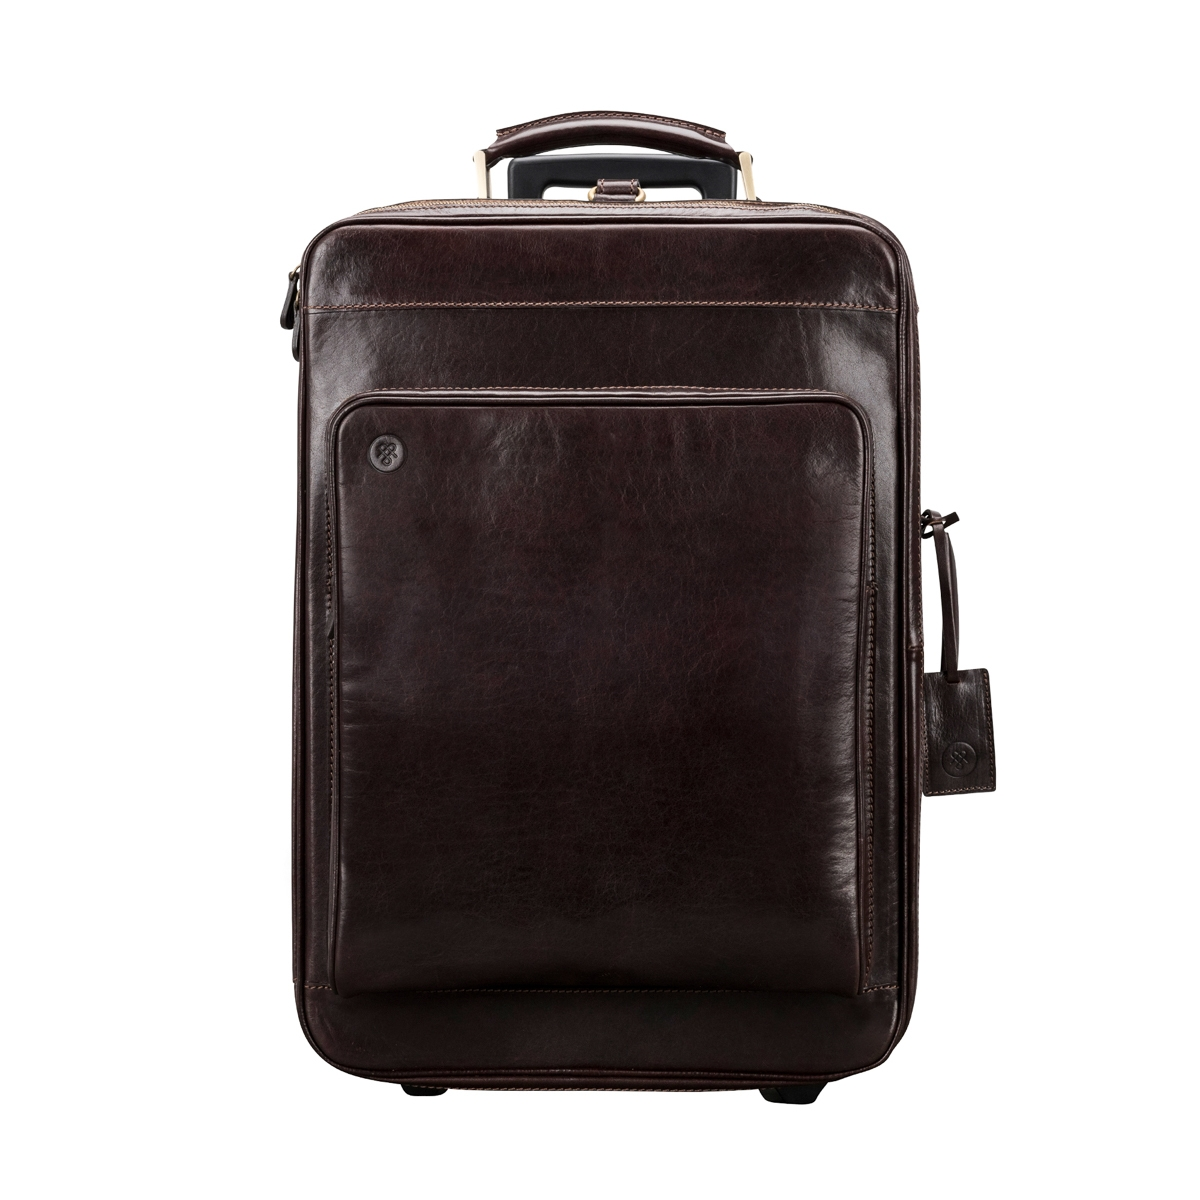 Handrafted real brown leather suitcase with wheels - Maxwell Scott Bags